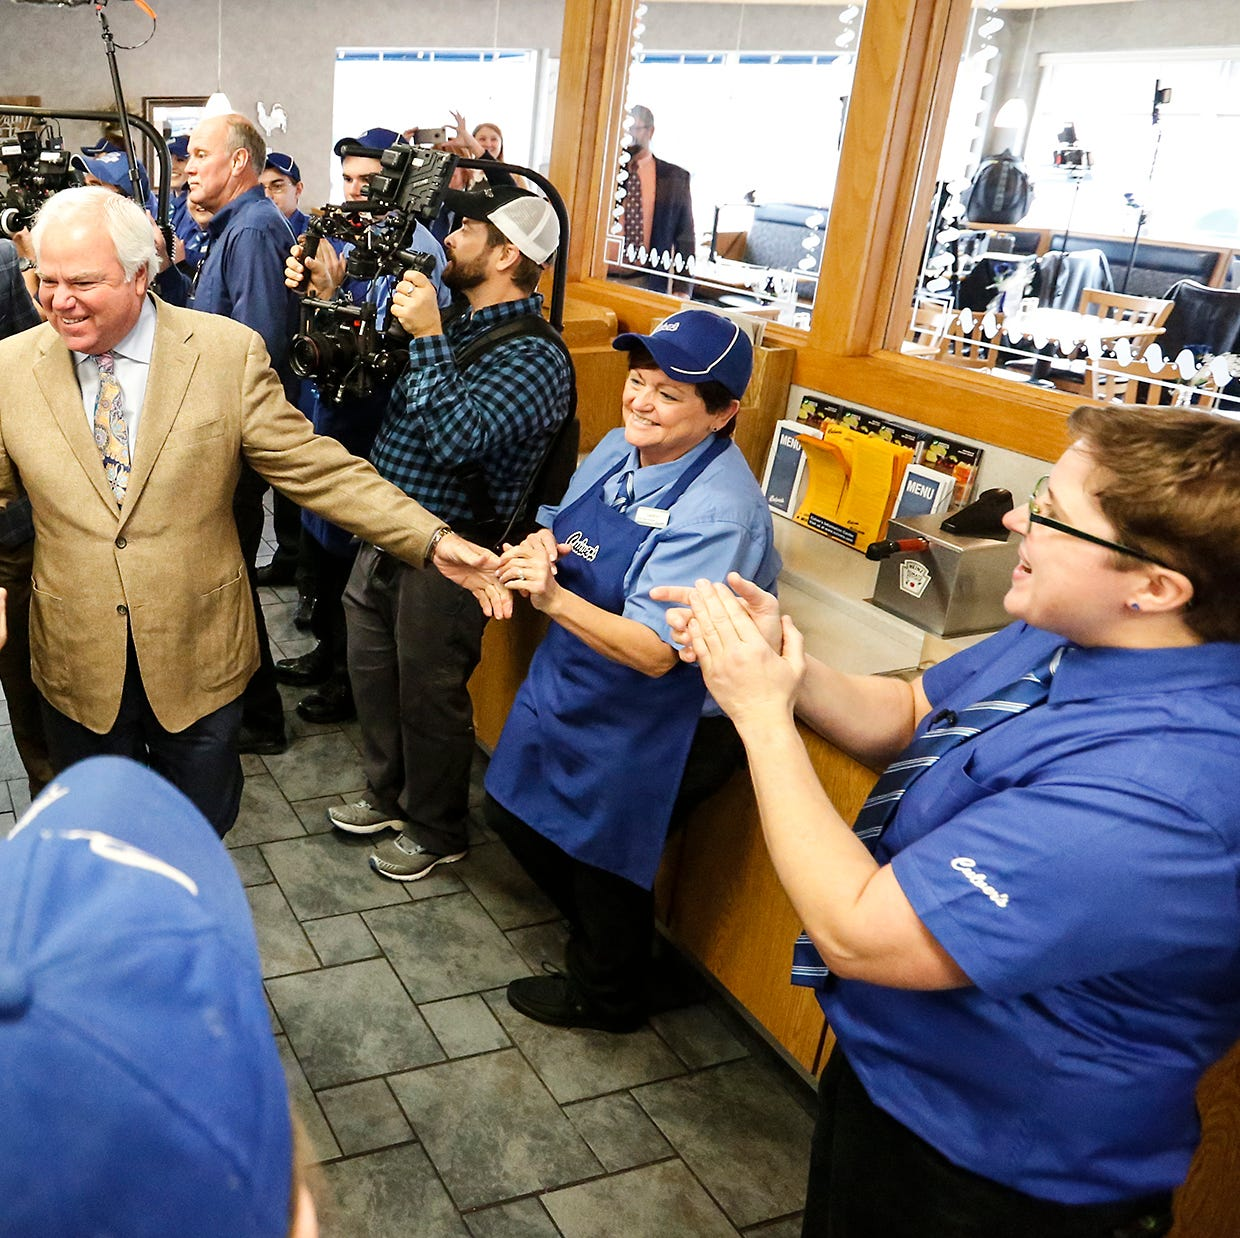 Culver's crew celebrates top five achievement with visit from Craig Culver, Joe Koss